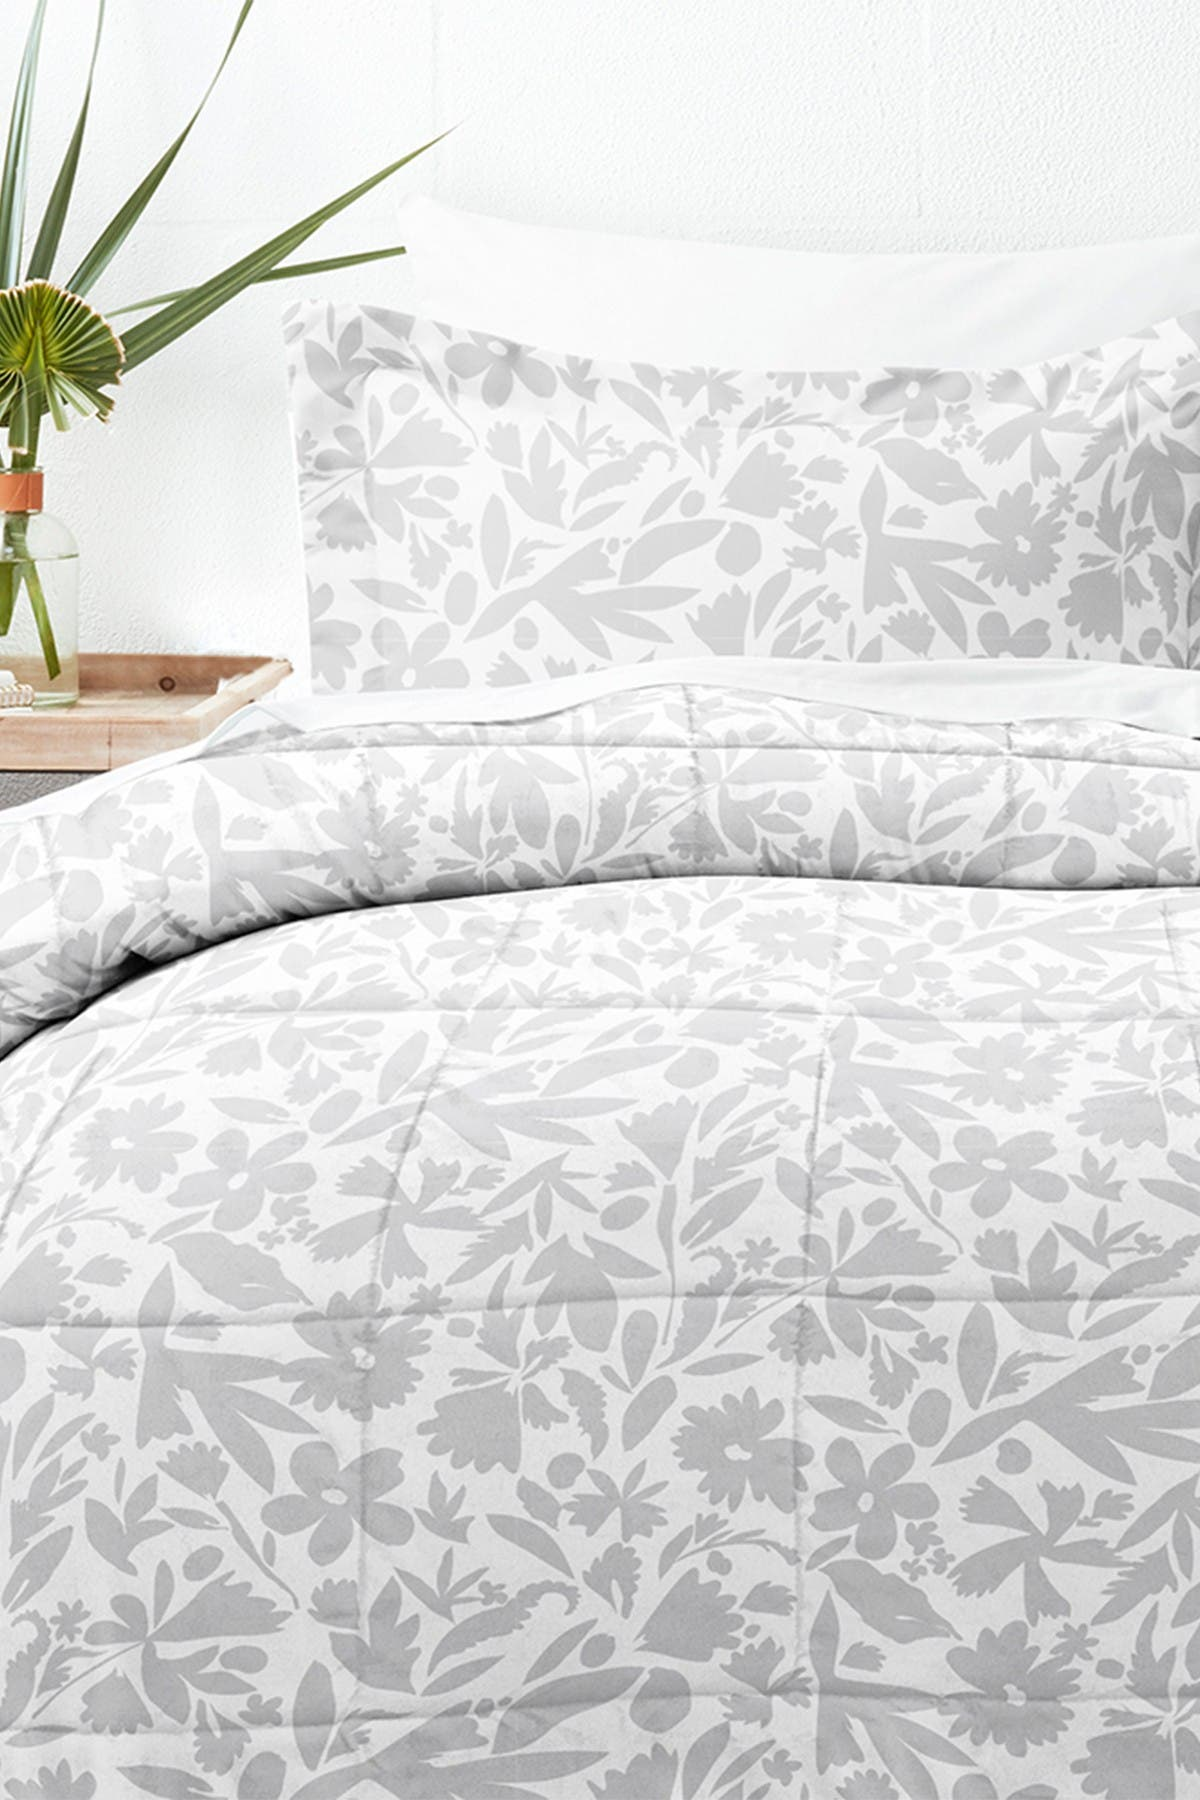 Ienjoy Home Home Collection Premium Down Alternative Abstract Garden Patterned Comforter Set Light Gray Twin Nordstrom Rack